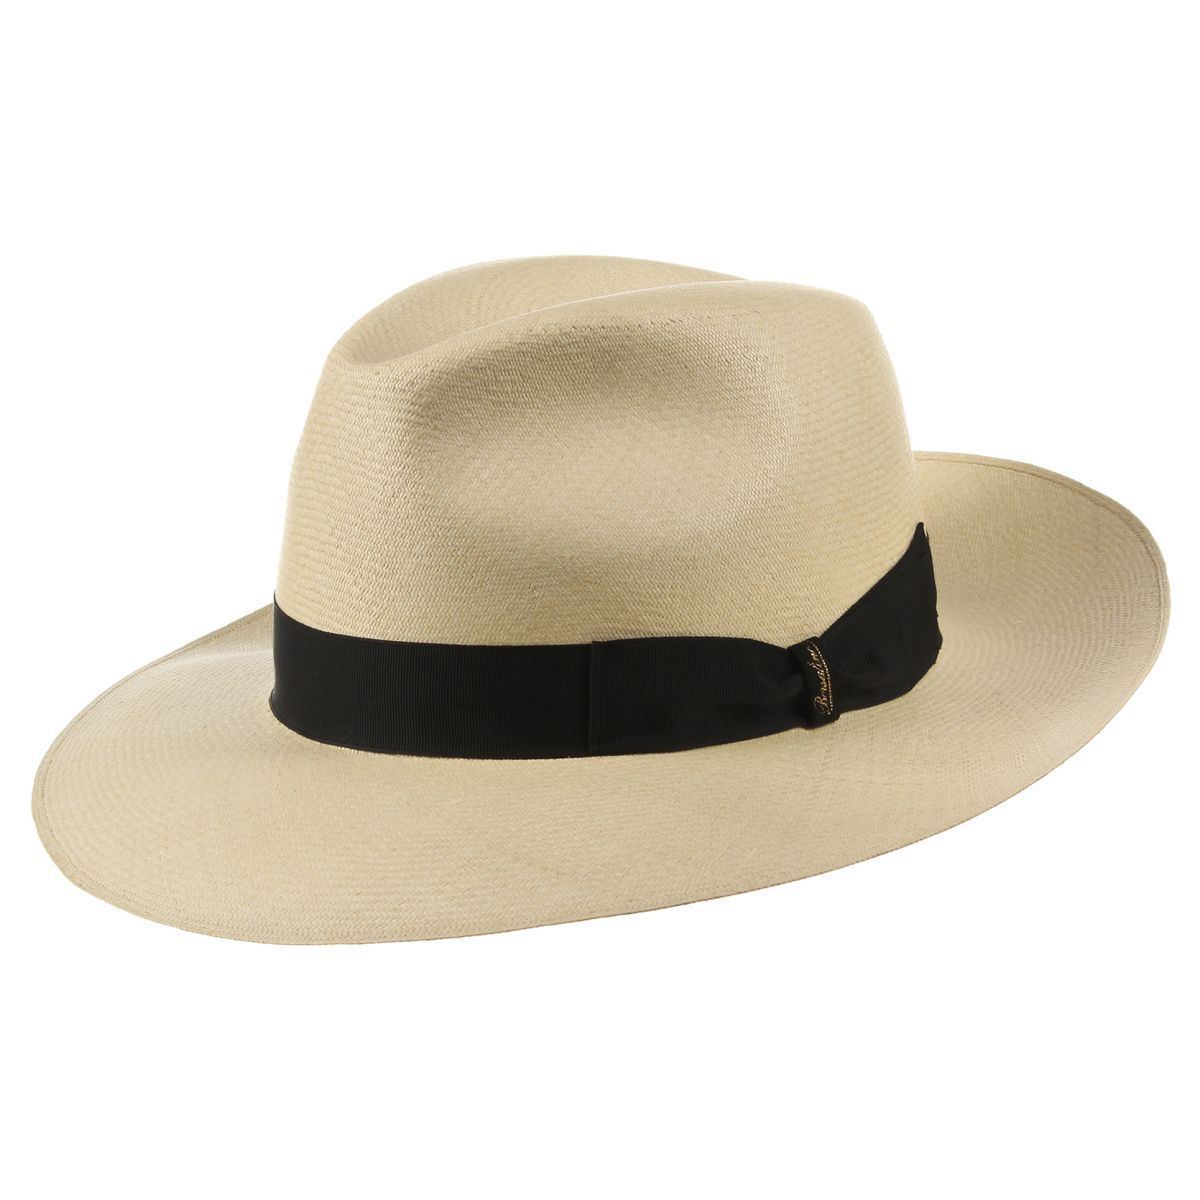 Prestige Panama Bogarthut By Borsalino Fashion Hats Pinterest